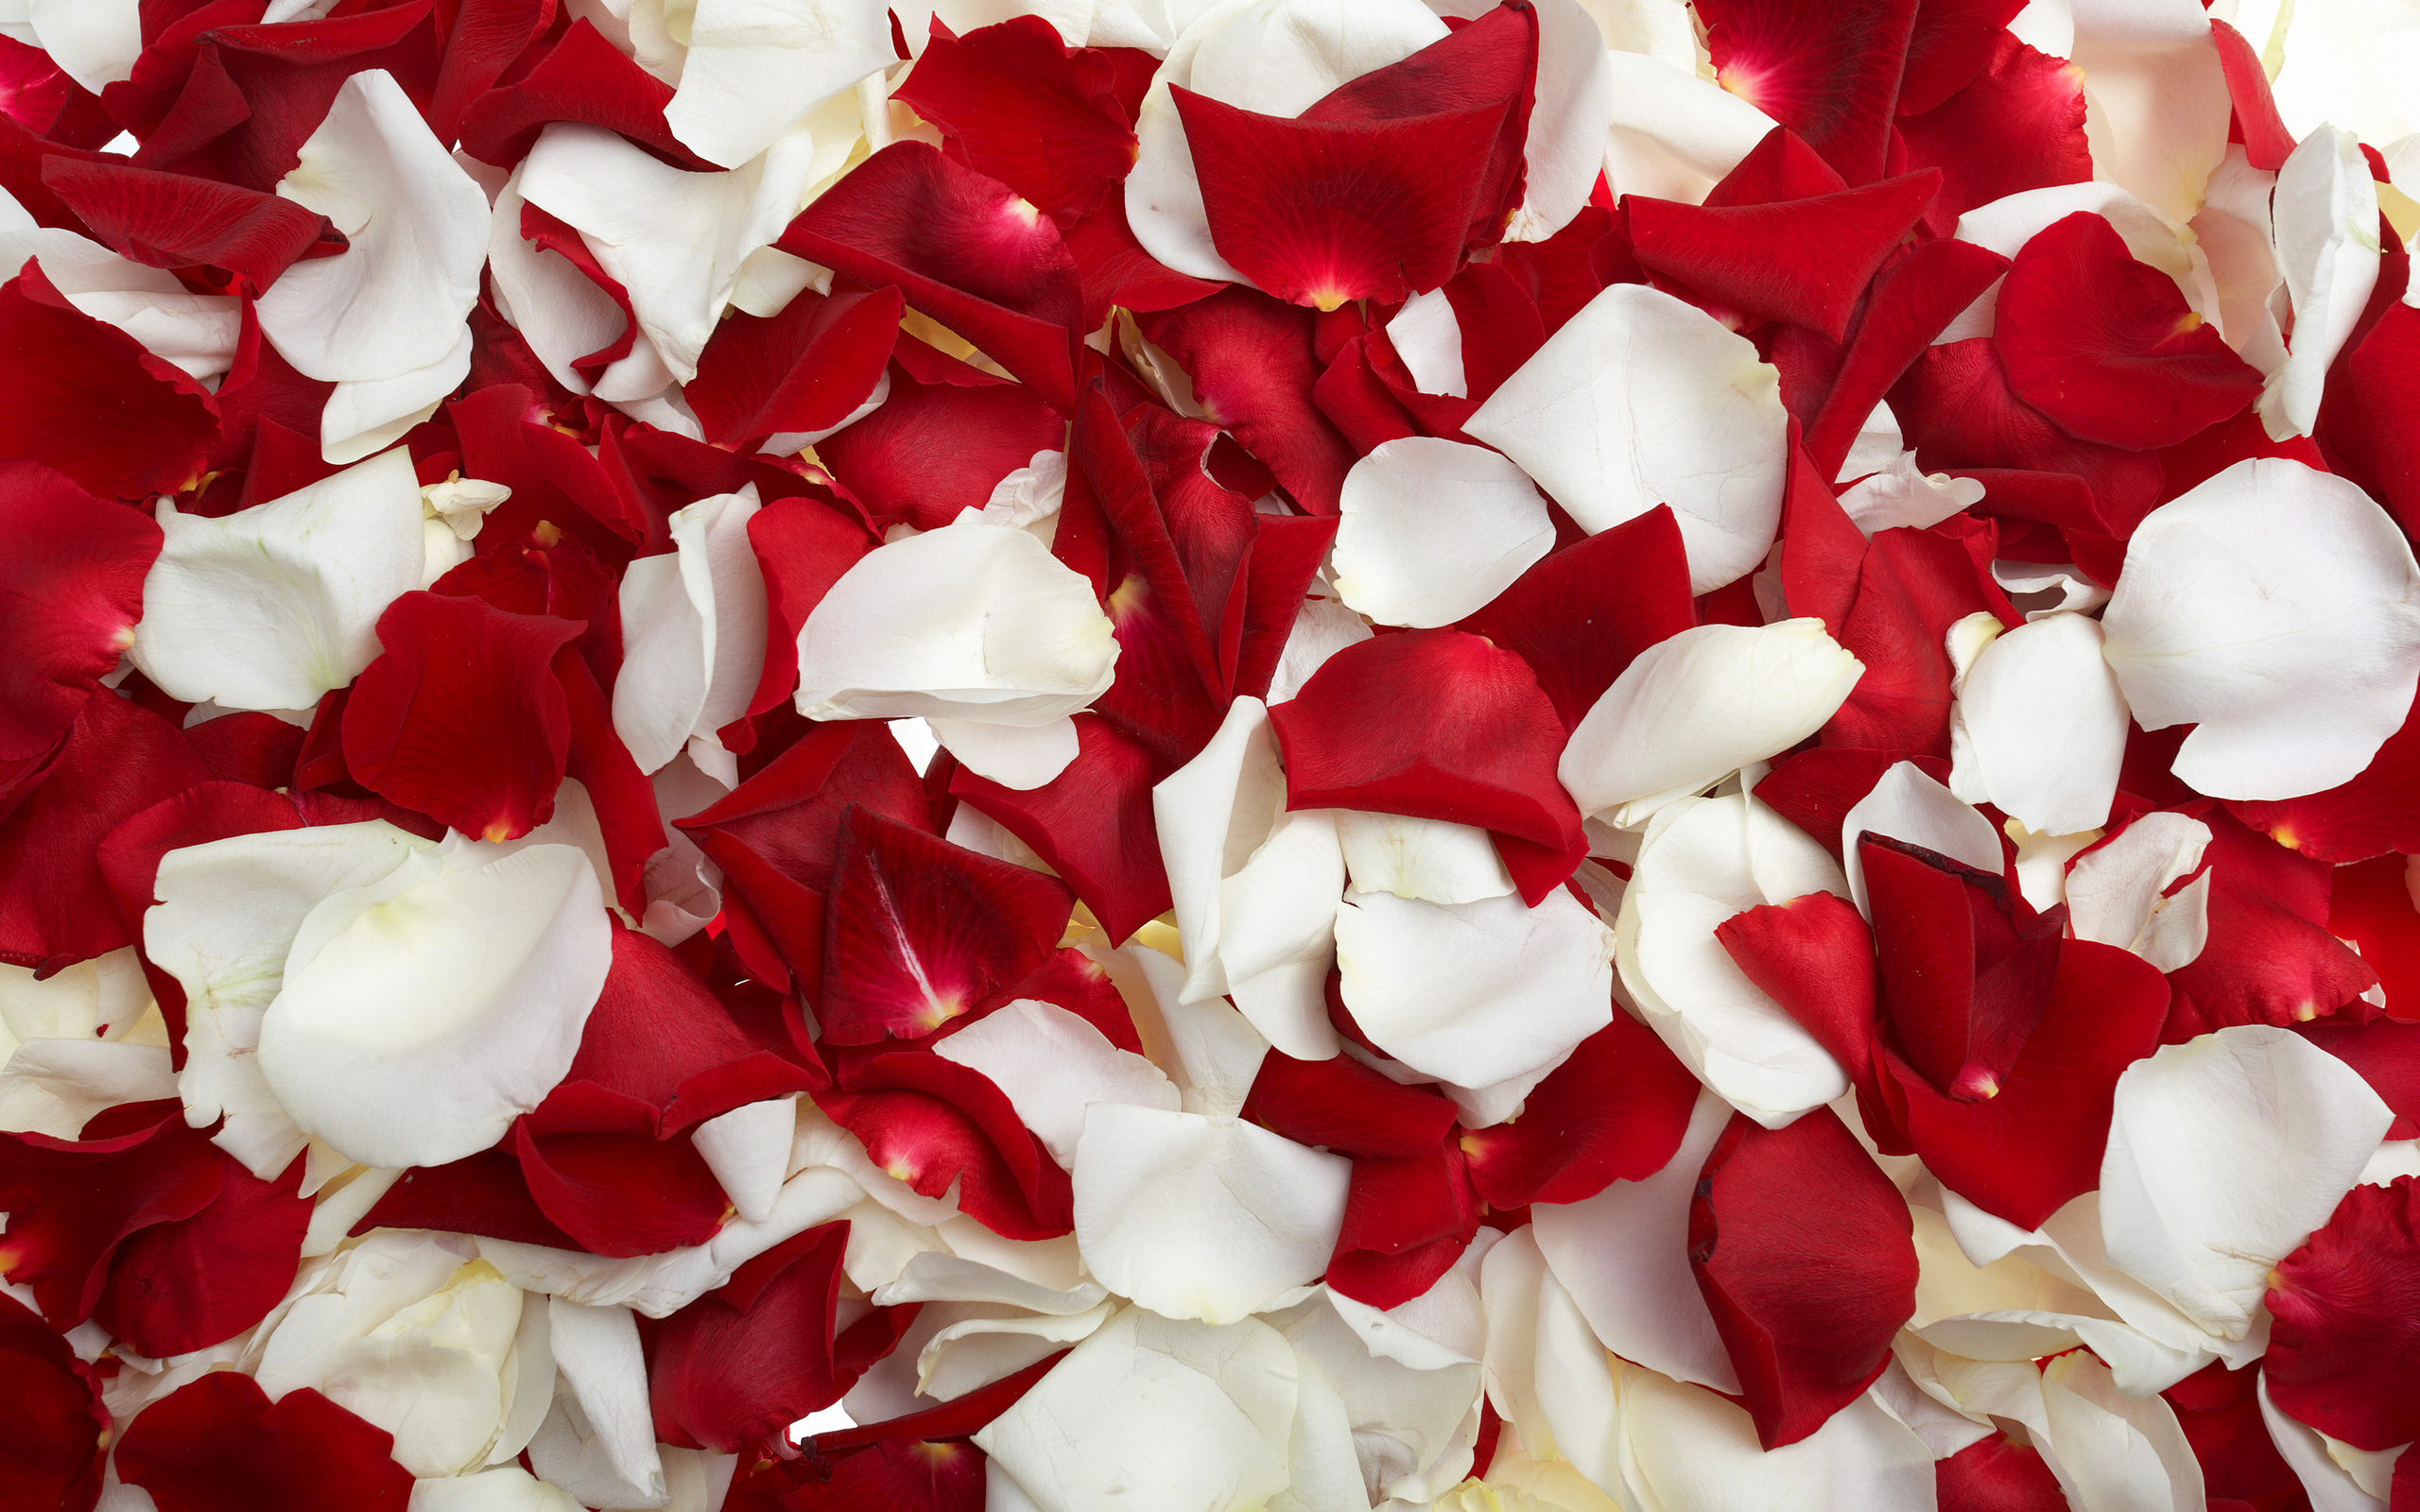 Flowers Rose Petals Wallpapers HD Pictures One HD Wallpaper 2560x1600